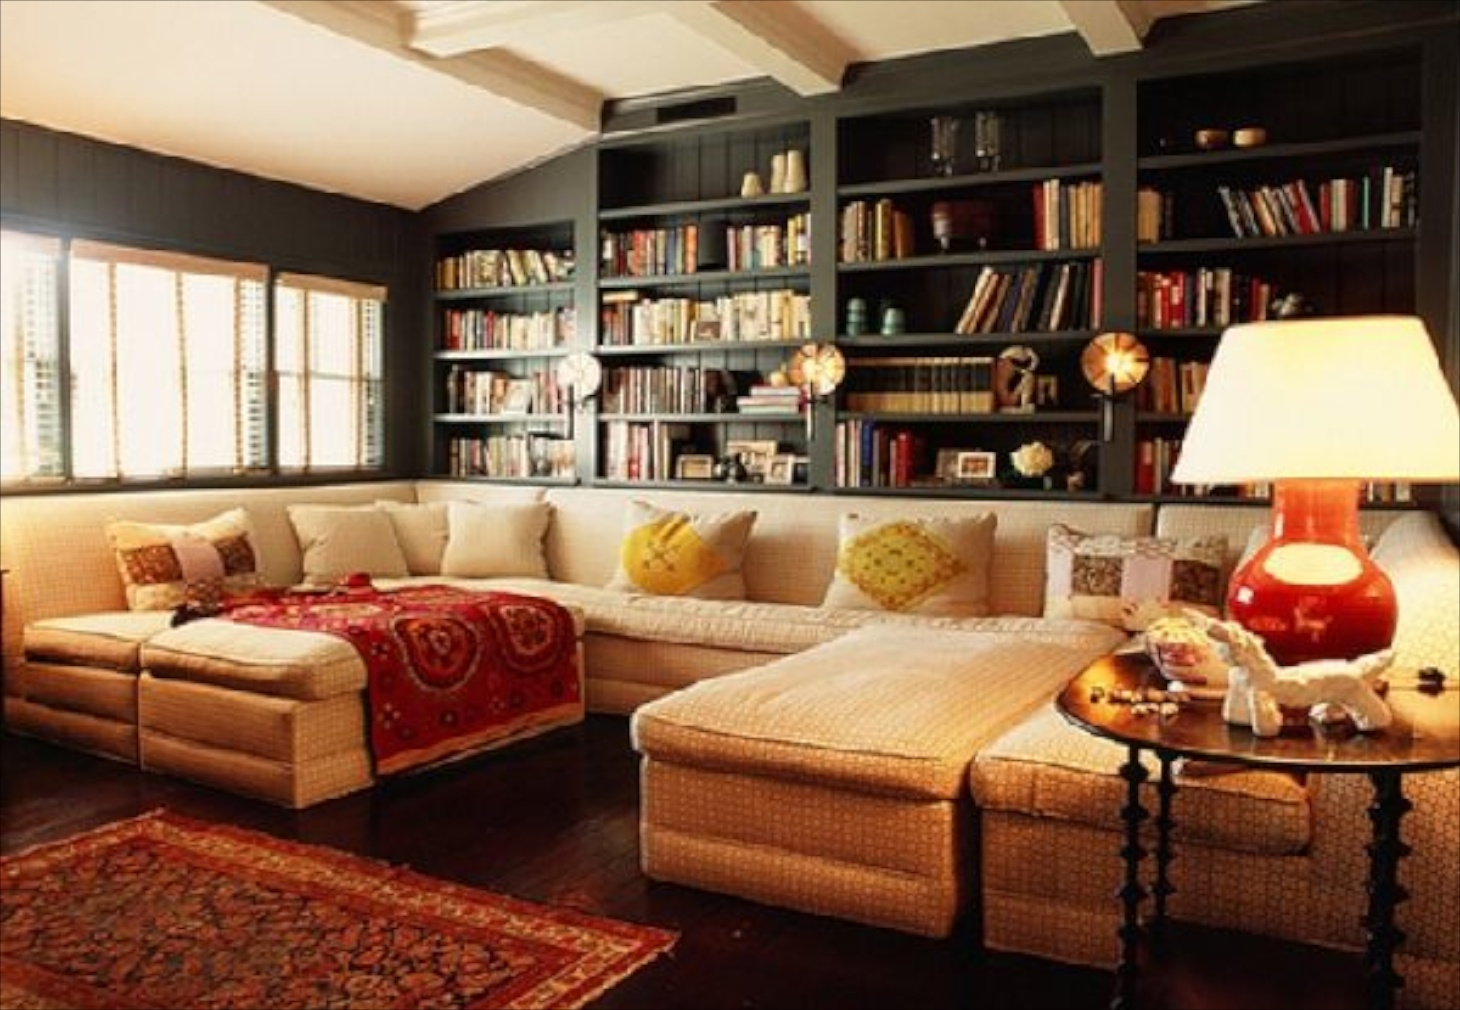 23 sofas and bookcase ideas in cozy living room design for Decor ideas for living room